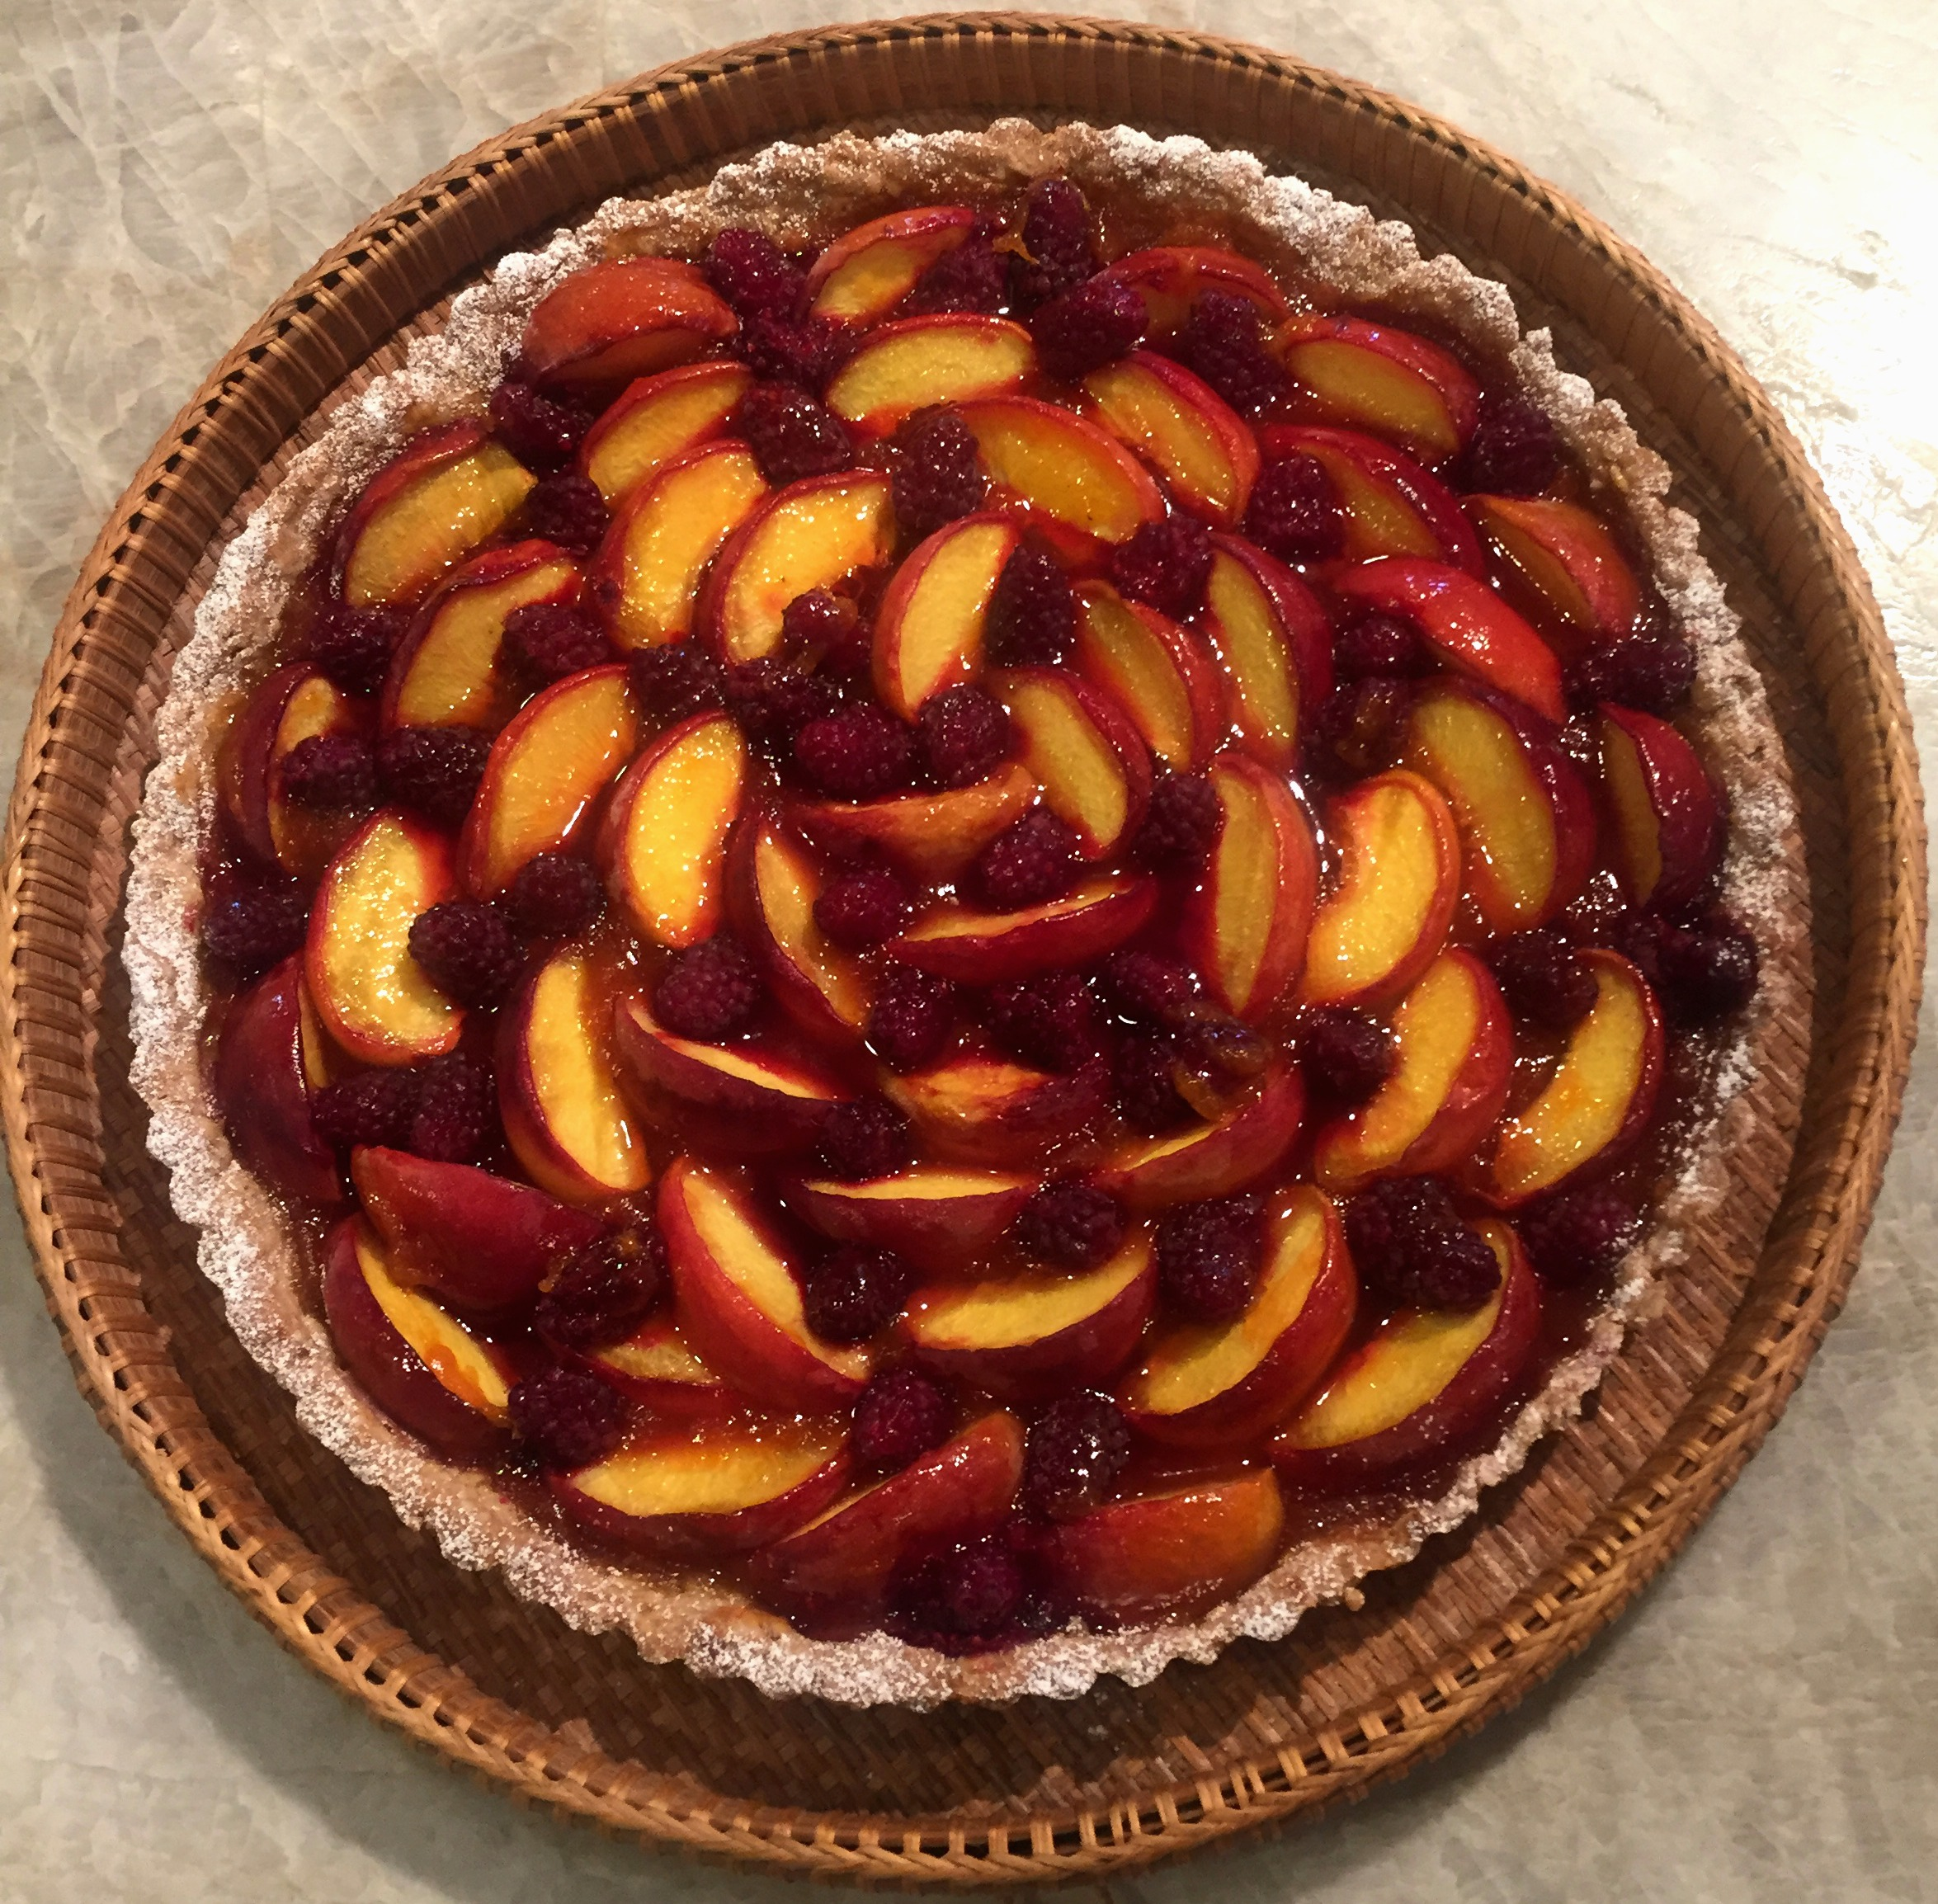 Peach Tart with an Oatmeal Crust